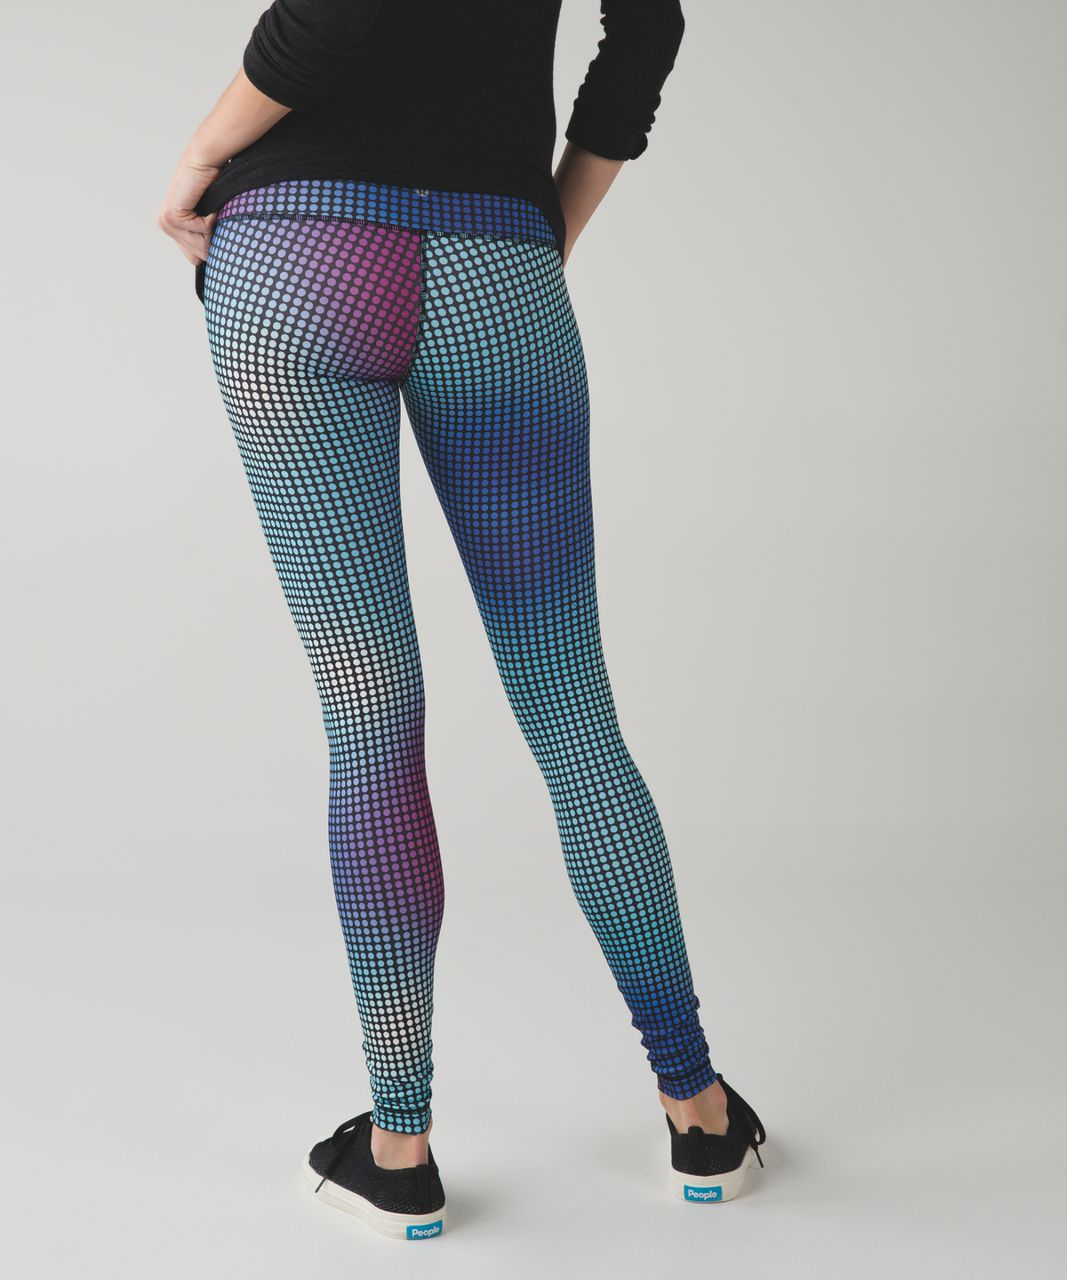 Lululemon Wunder Under Pant III *Full-On Luon - Cosmic Dot White Multi / Black